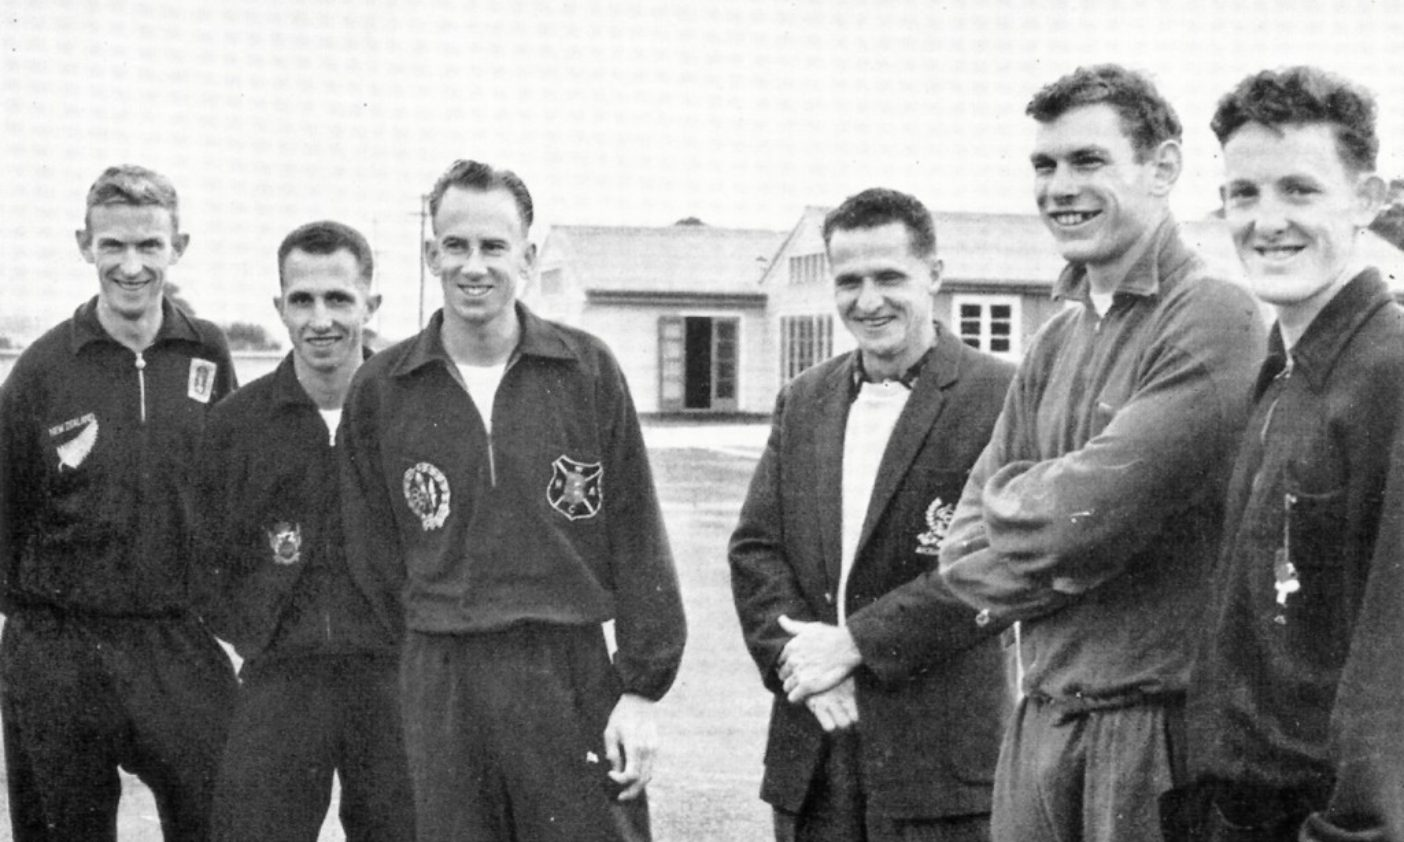 Arthur Lydiard (hands folded) with his team at the 1960 Rome Olympics.